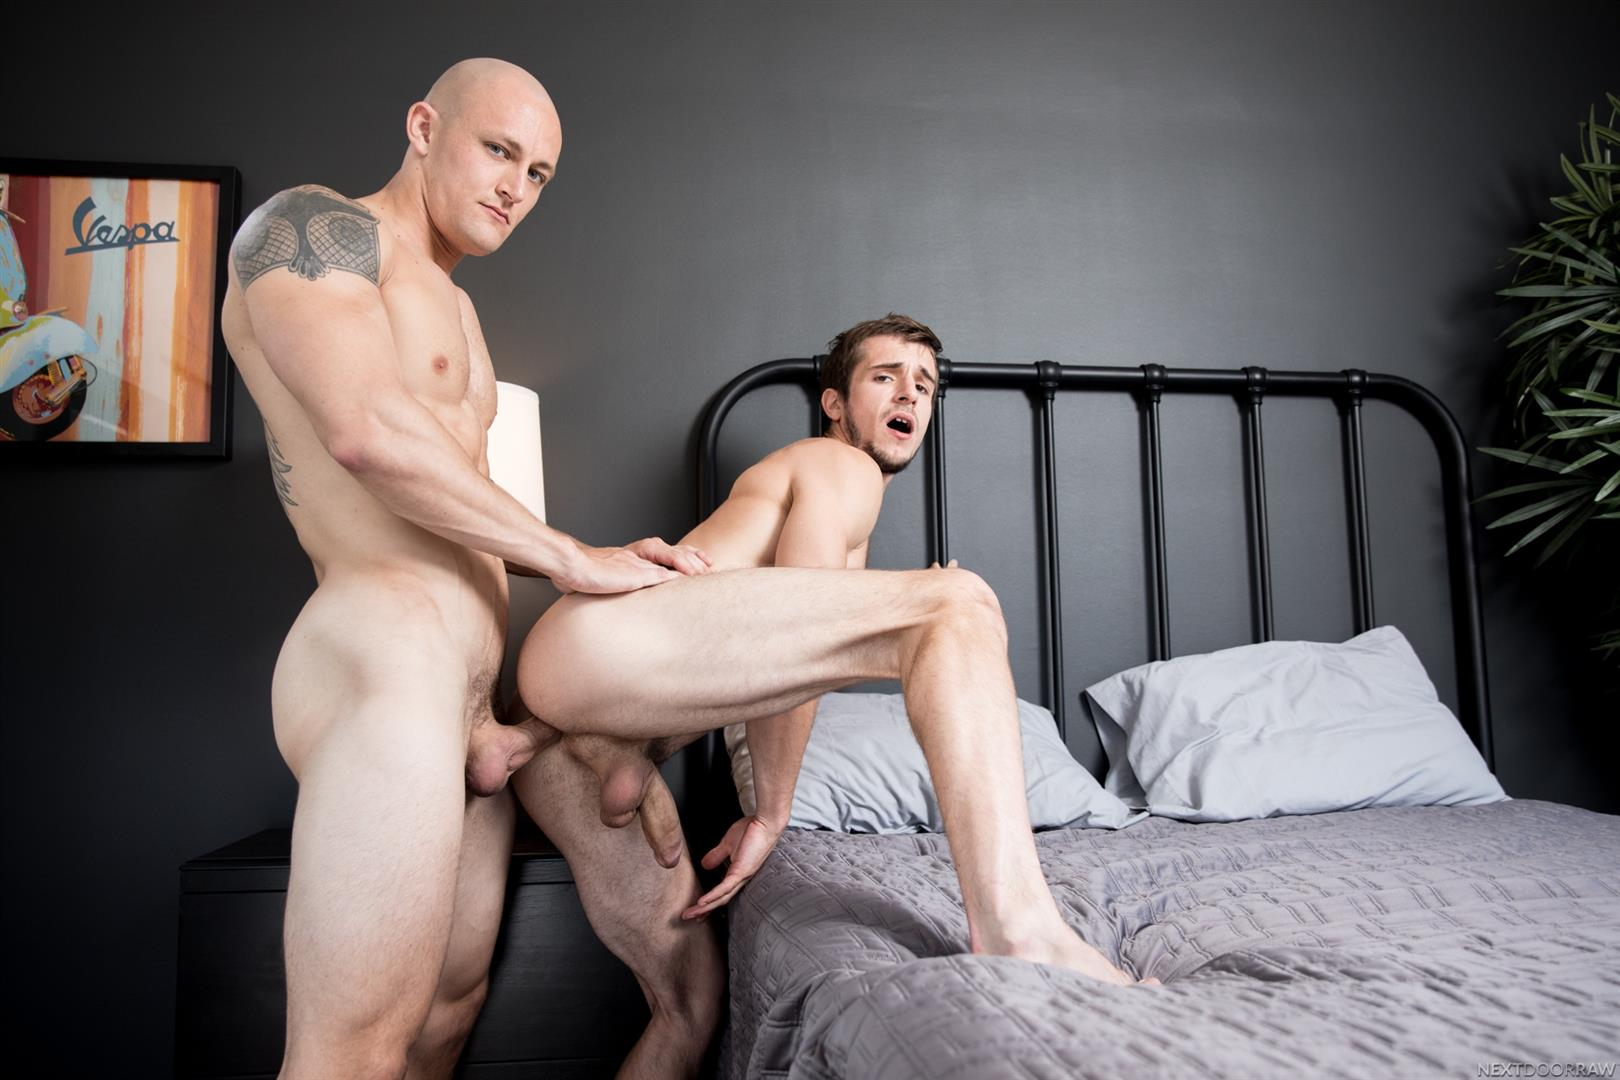 Next-Door-Raw-Trevor-Laster-and-Donte-Thick-Bareback-Free-Video-Download-03 Trevor Laster Gives His Roomate Donte Thick An Anal Creampie